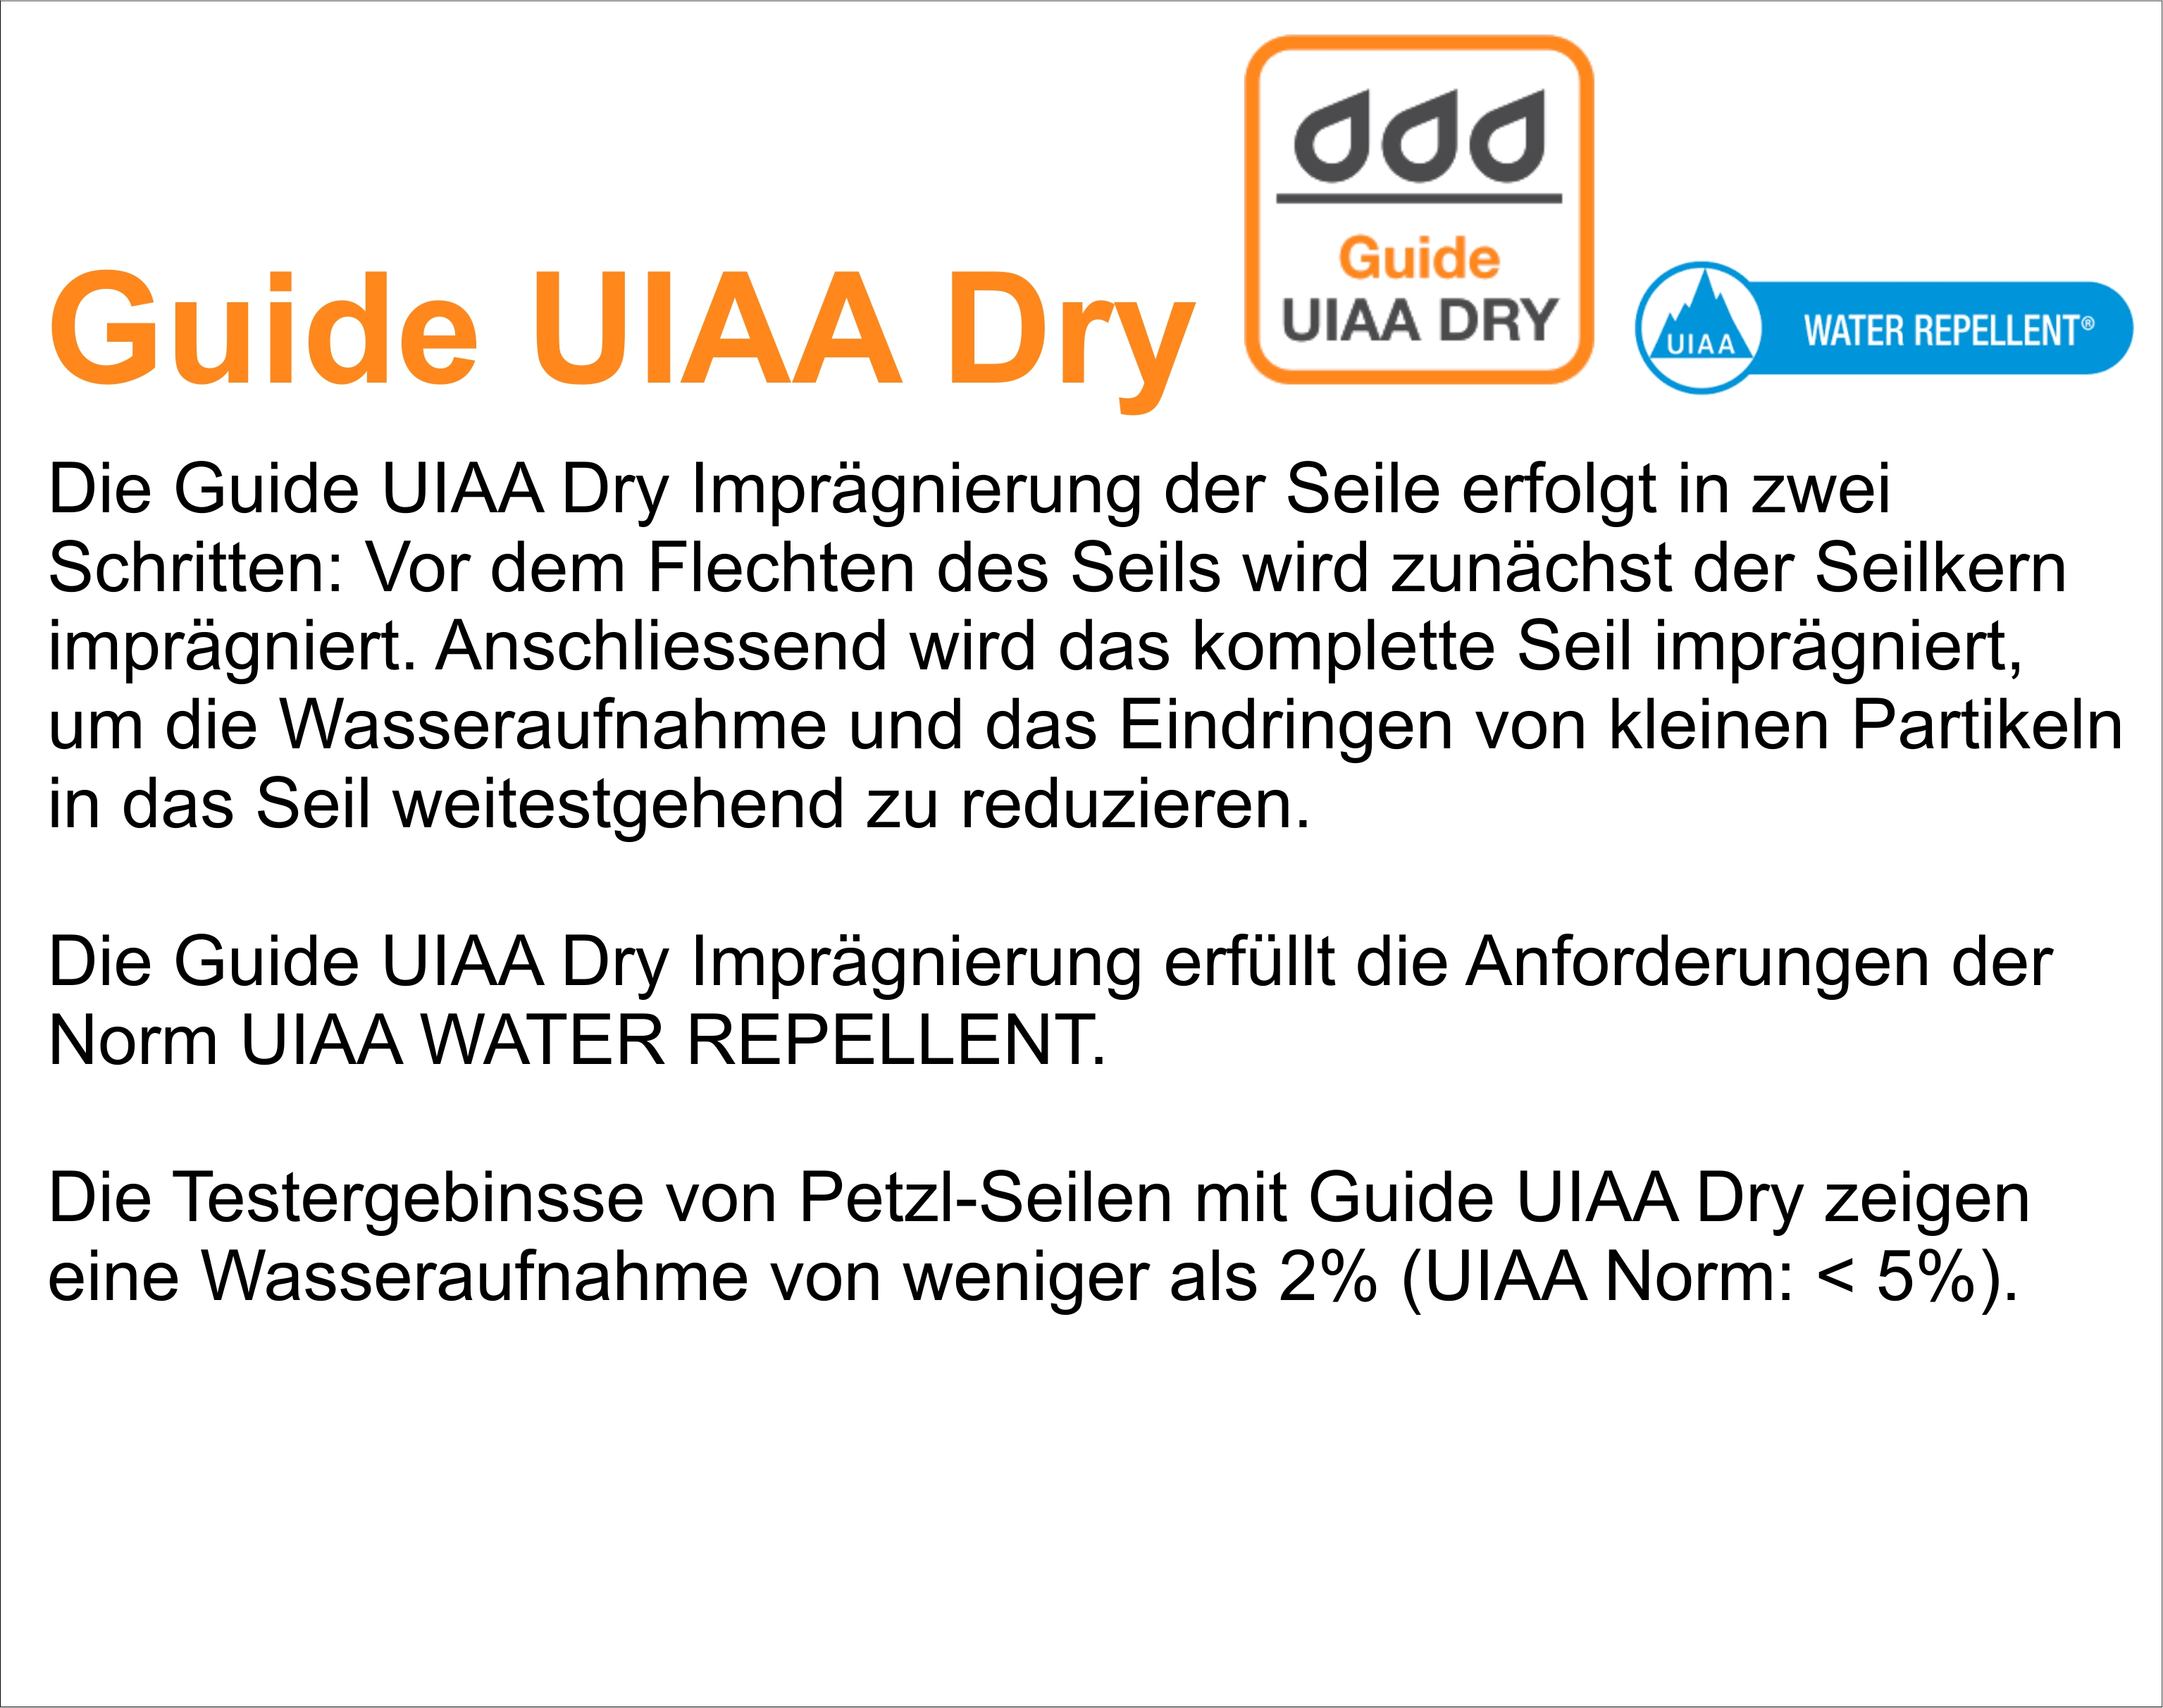 Petzl Seile: Guide UIAA Dry